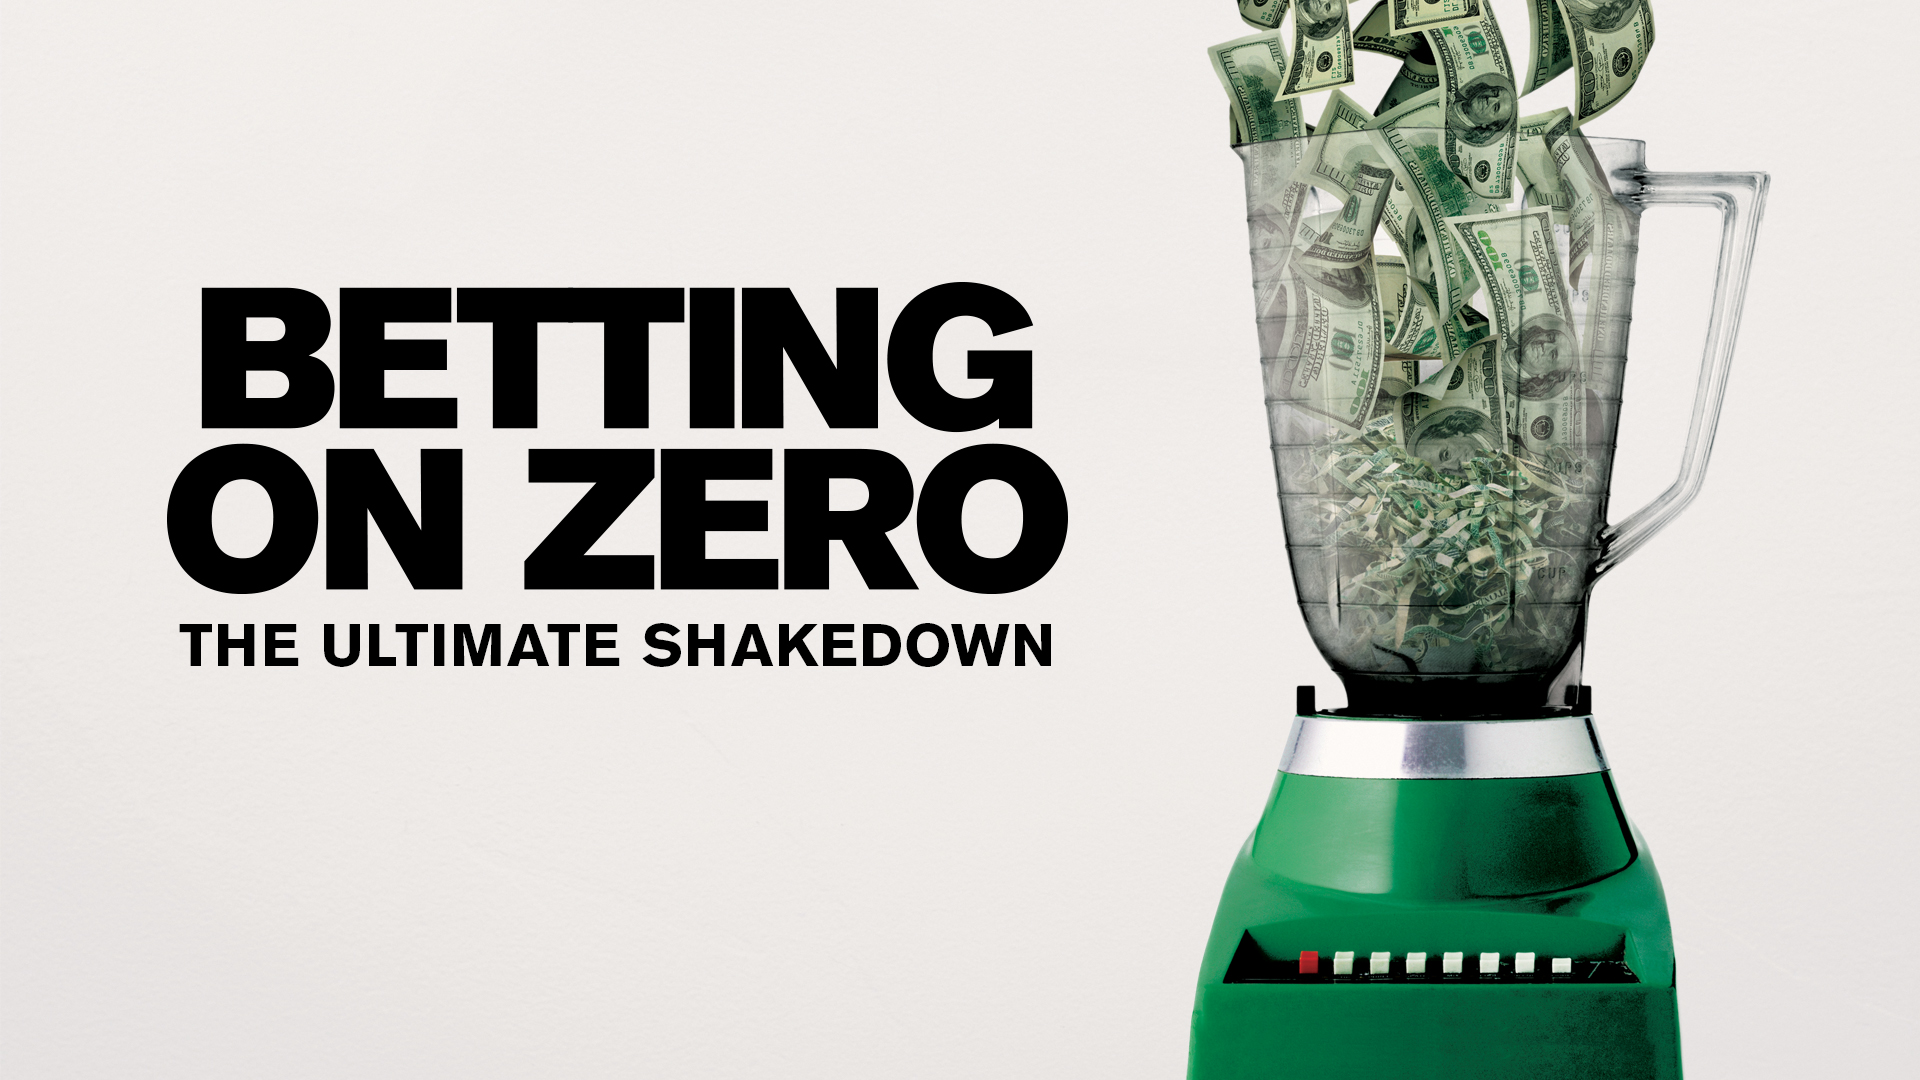 Betting on xero video women getting arrested aiding and abetting